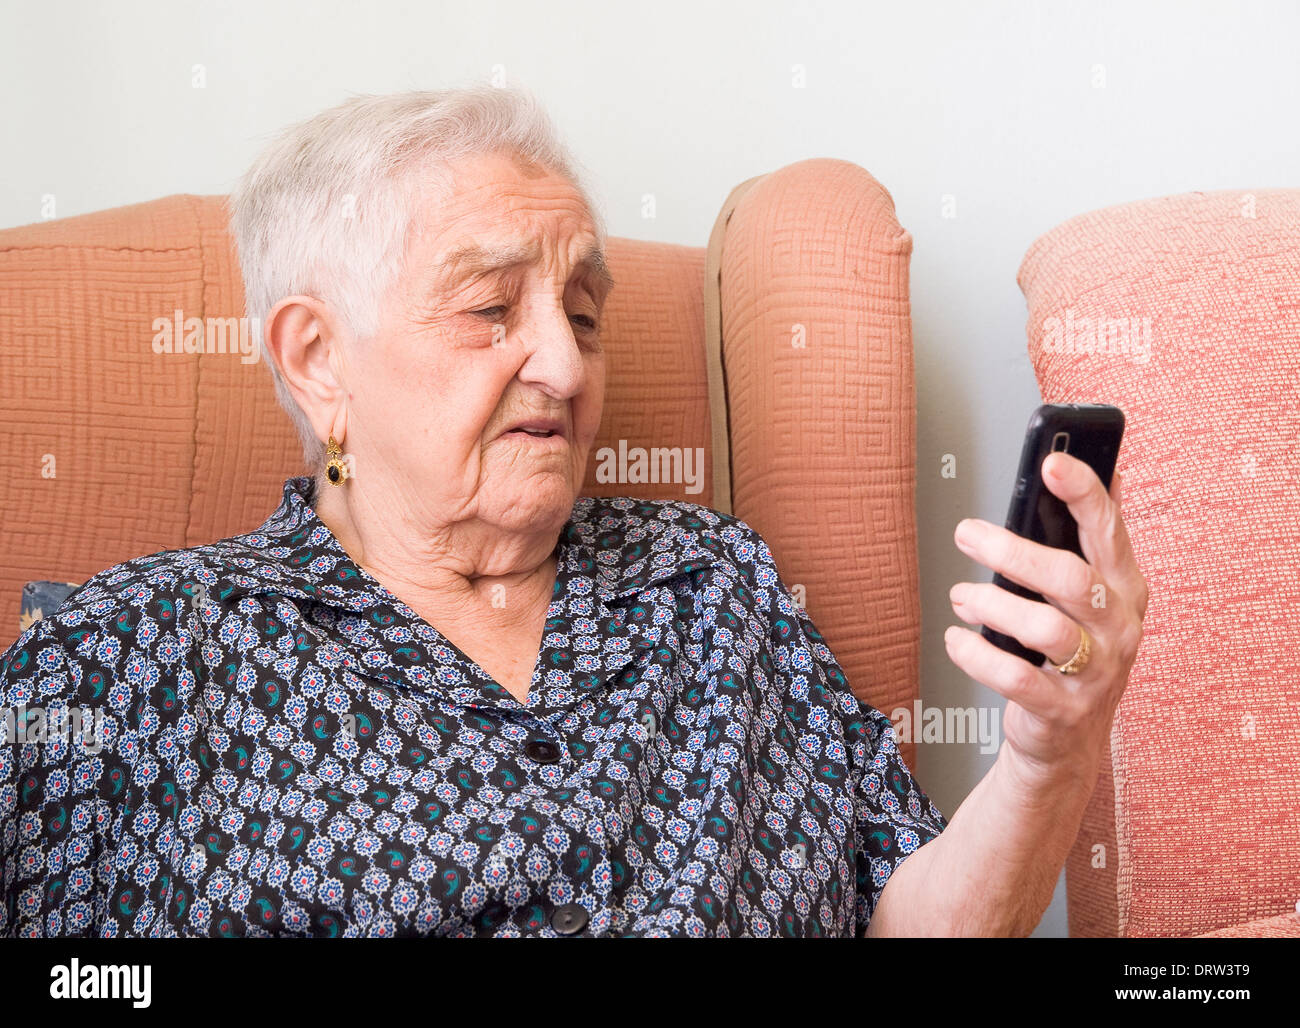 Elderly woman looking at a smartphone with confused expression. The woman is in her home. - Stock Image